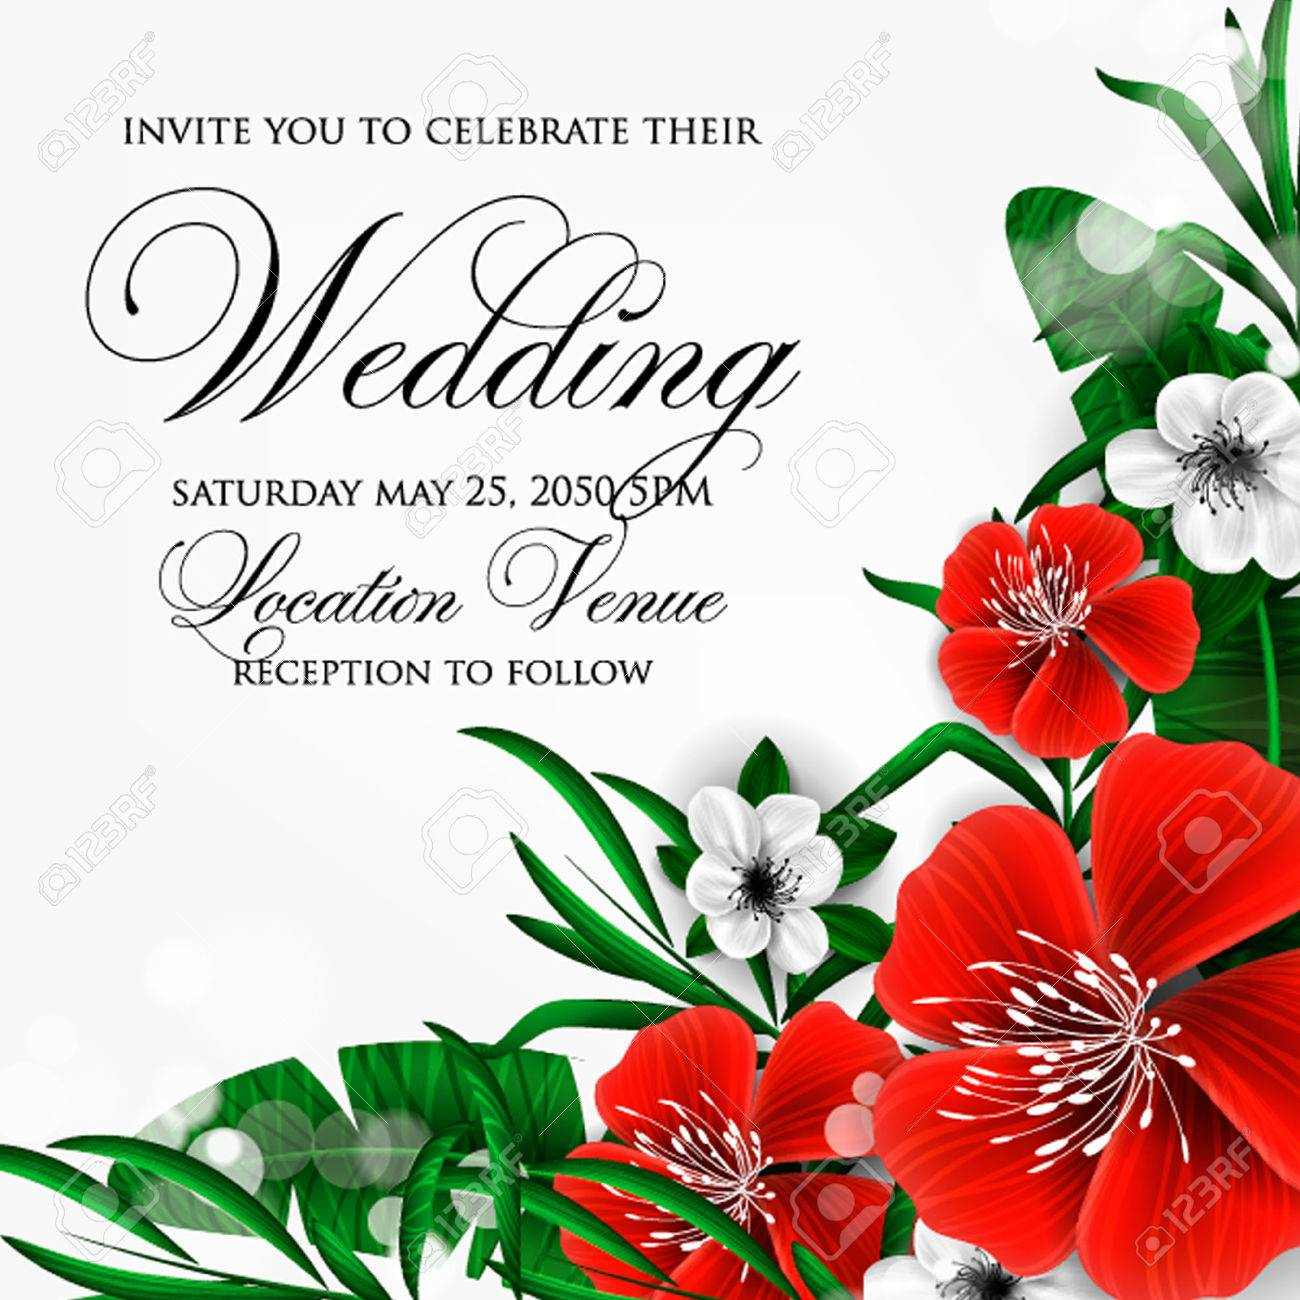 Wedding Invitation With Hibiscus And Cakura Flowers, Palm Leaf ...